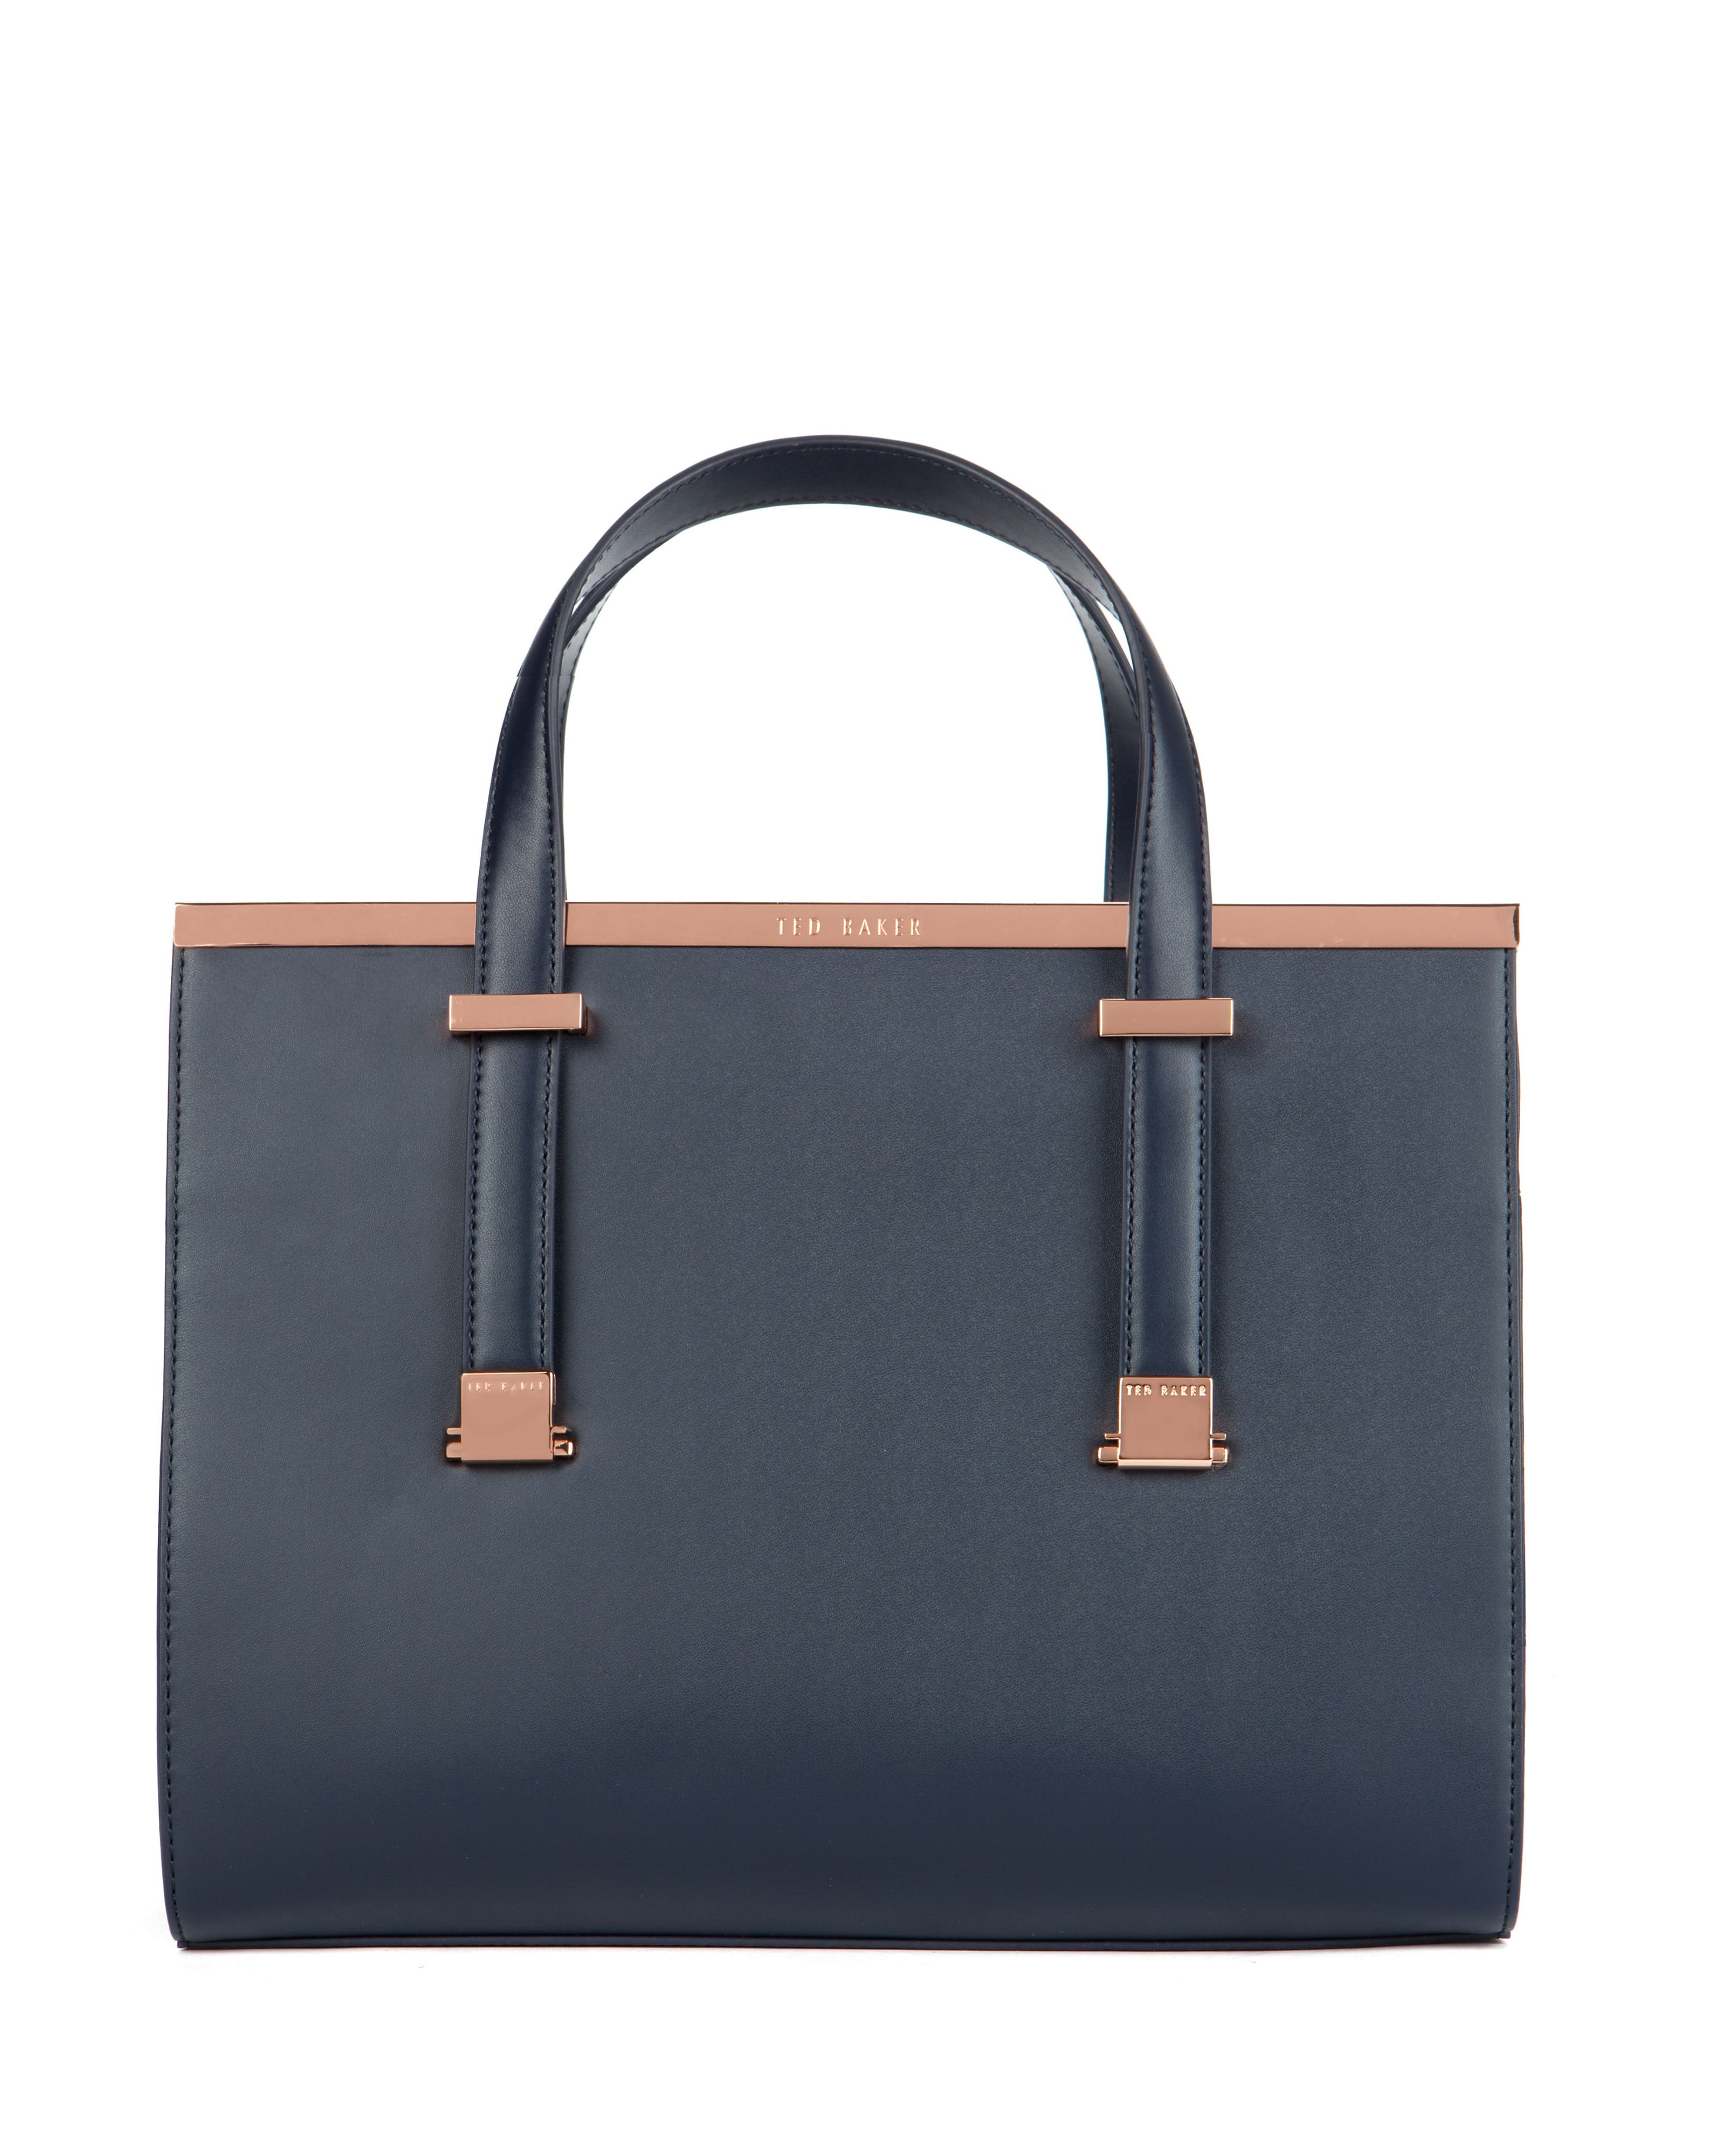 Harpel metallic bar tote bag